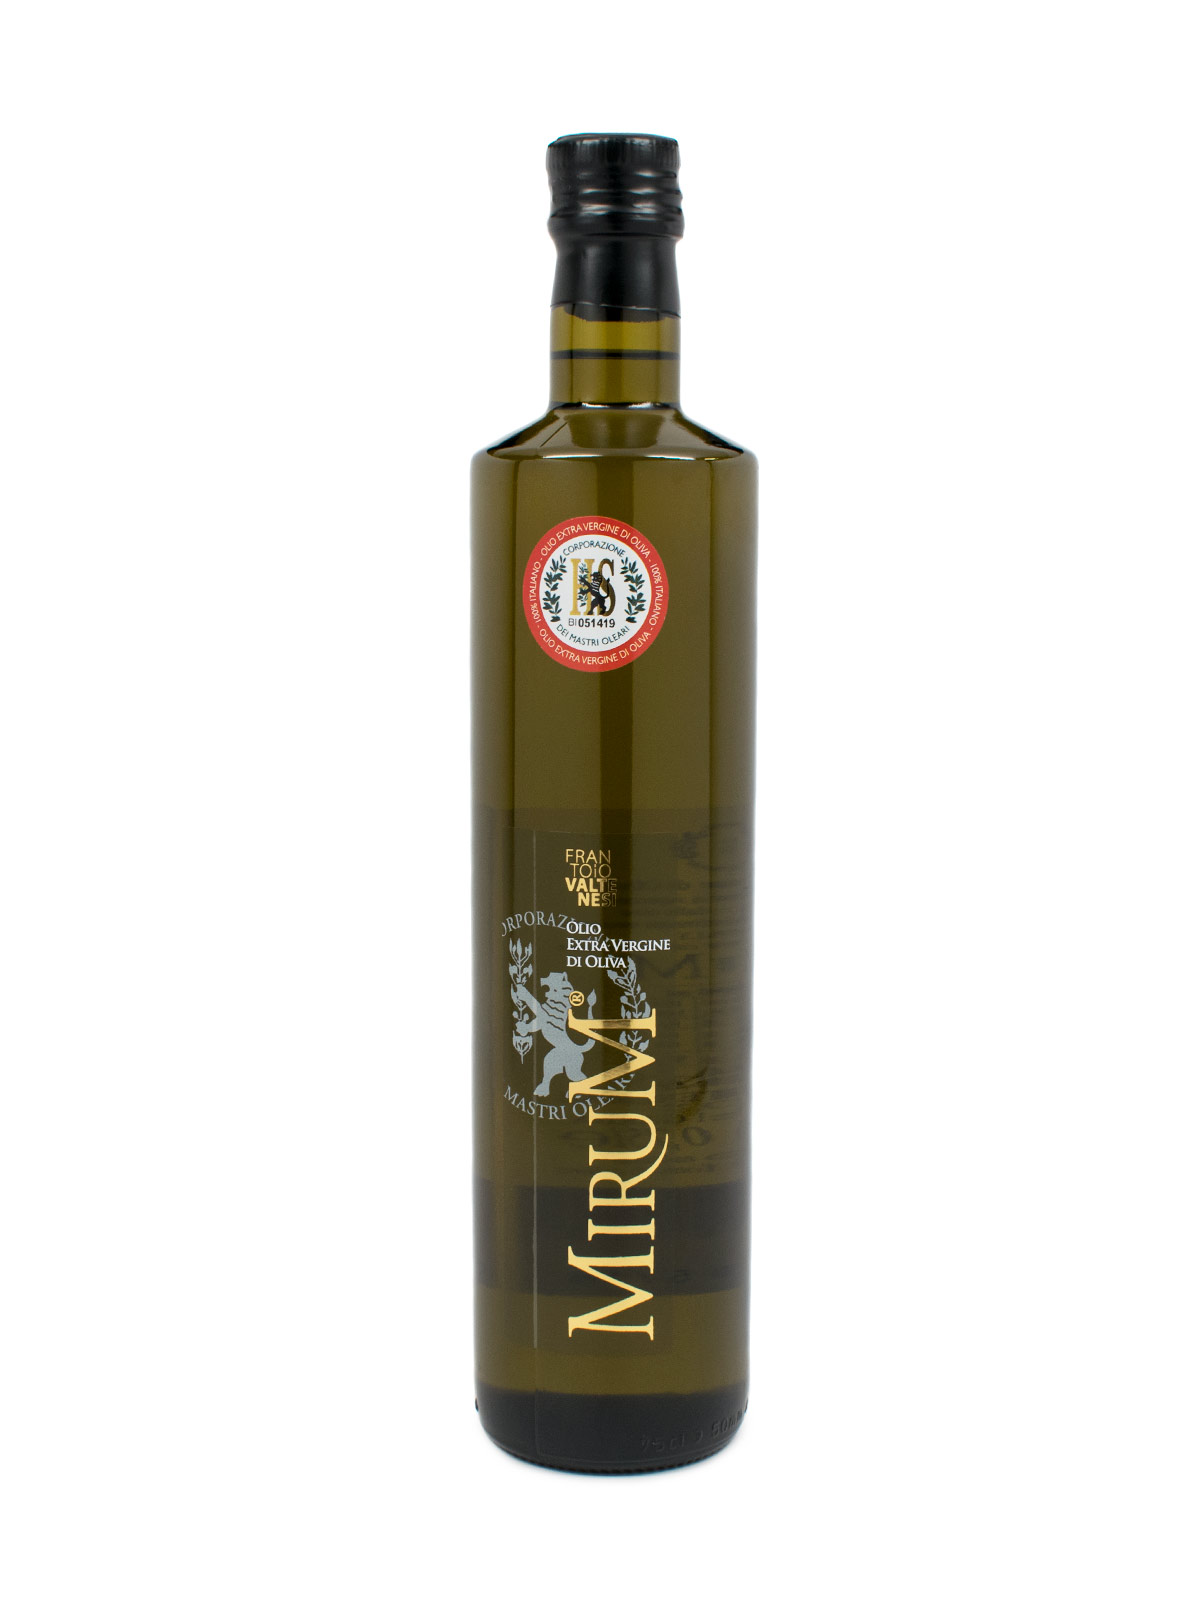 Mirum Extra Virgin Olive Oil - Oils & Vinegars - Buon'Italia